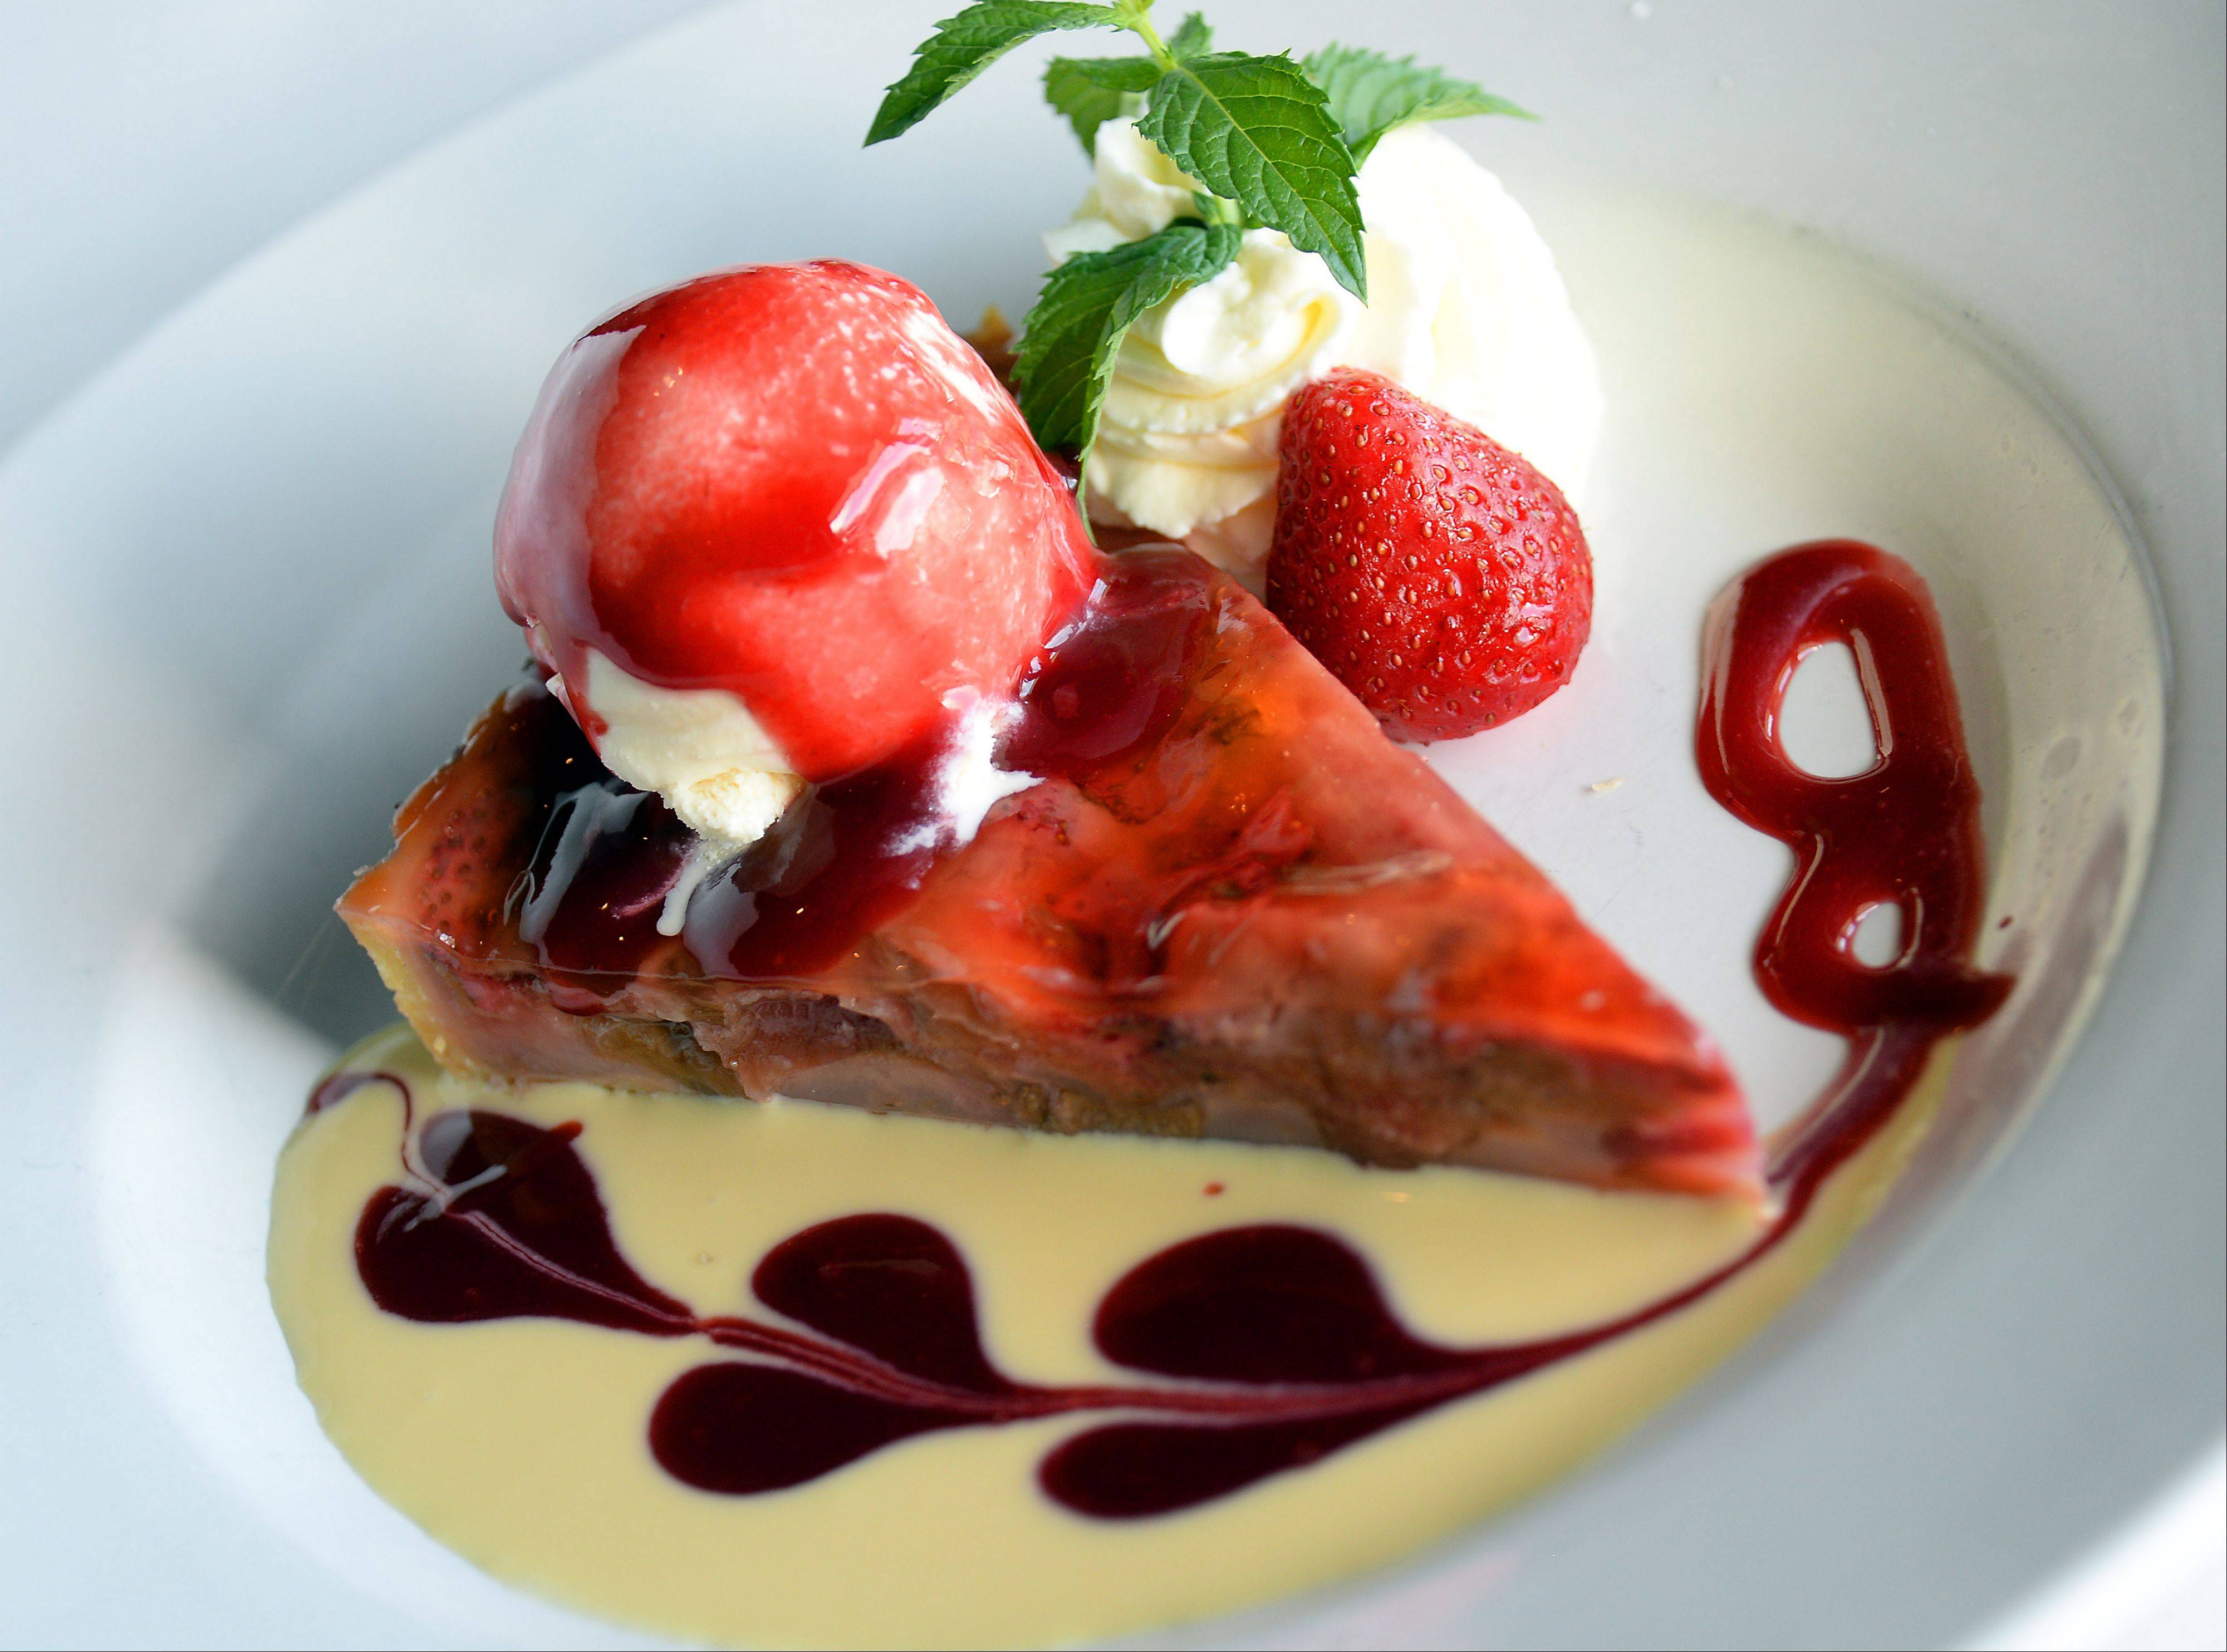 Besides classic French sausages and fish preparations, Retro Bistro in Mount Prospect serves seasonal desserts like this rhubarb and strawberry tart.